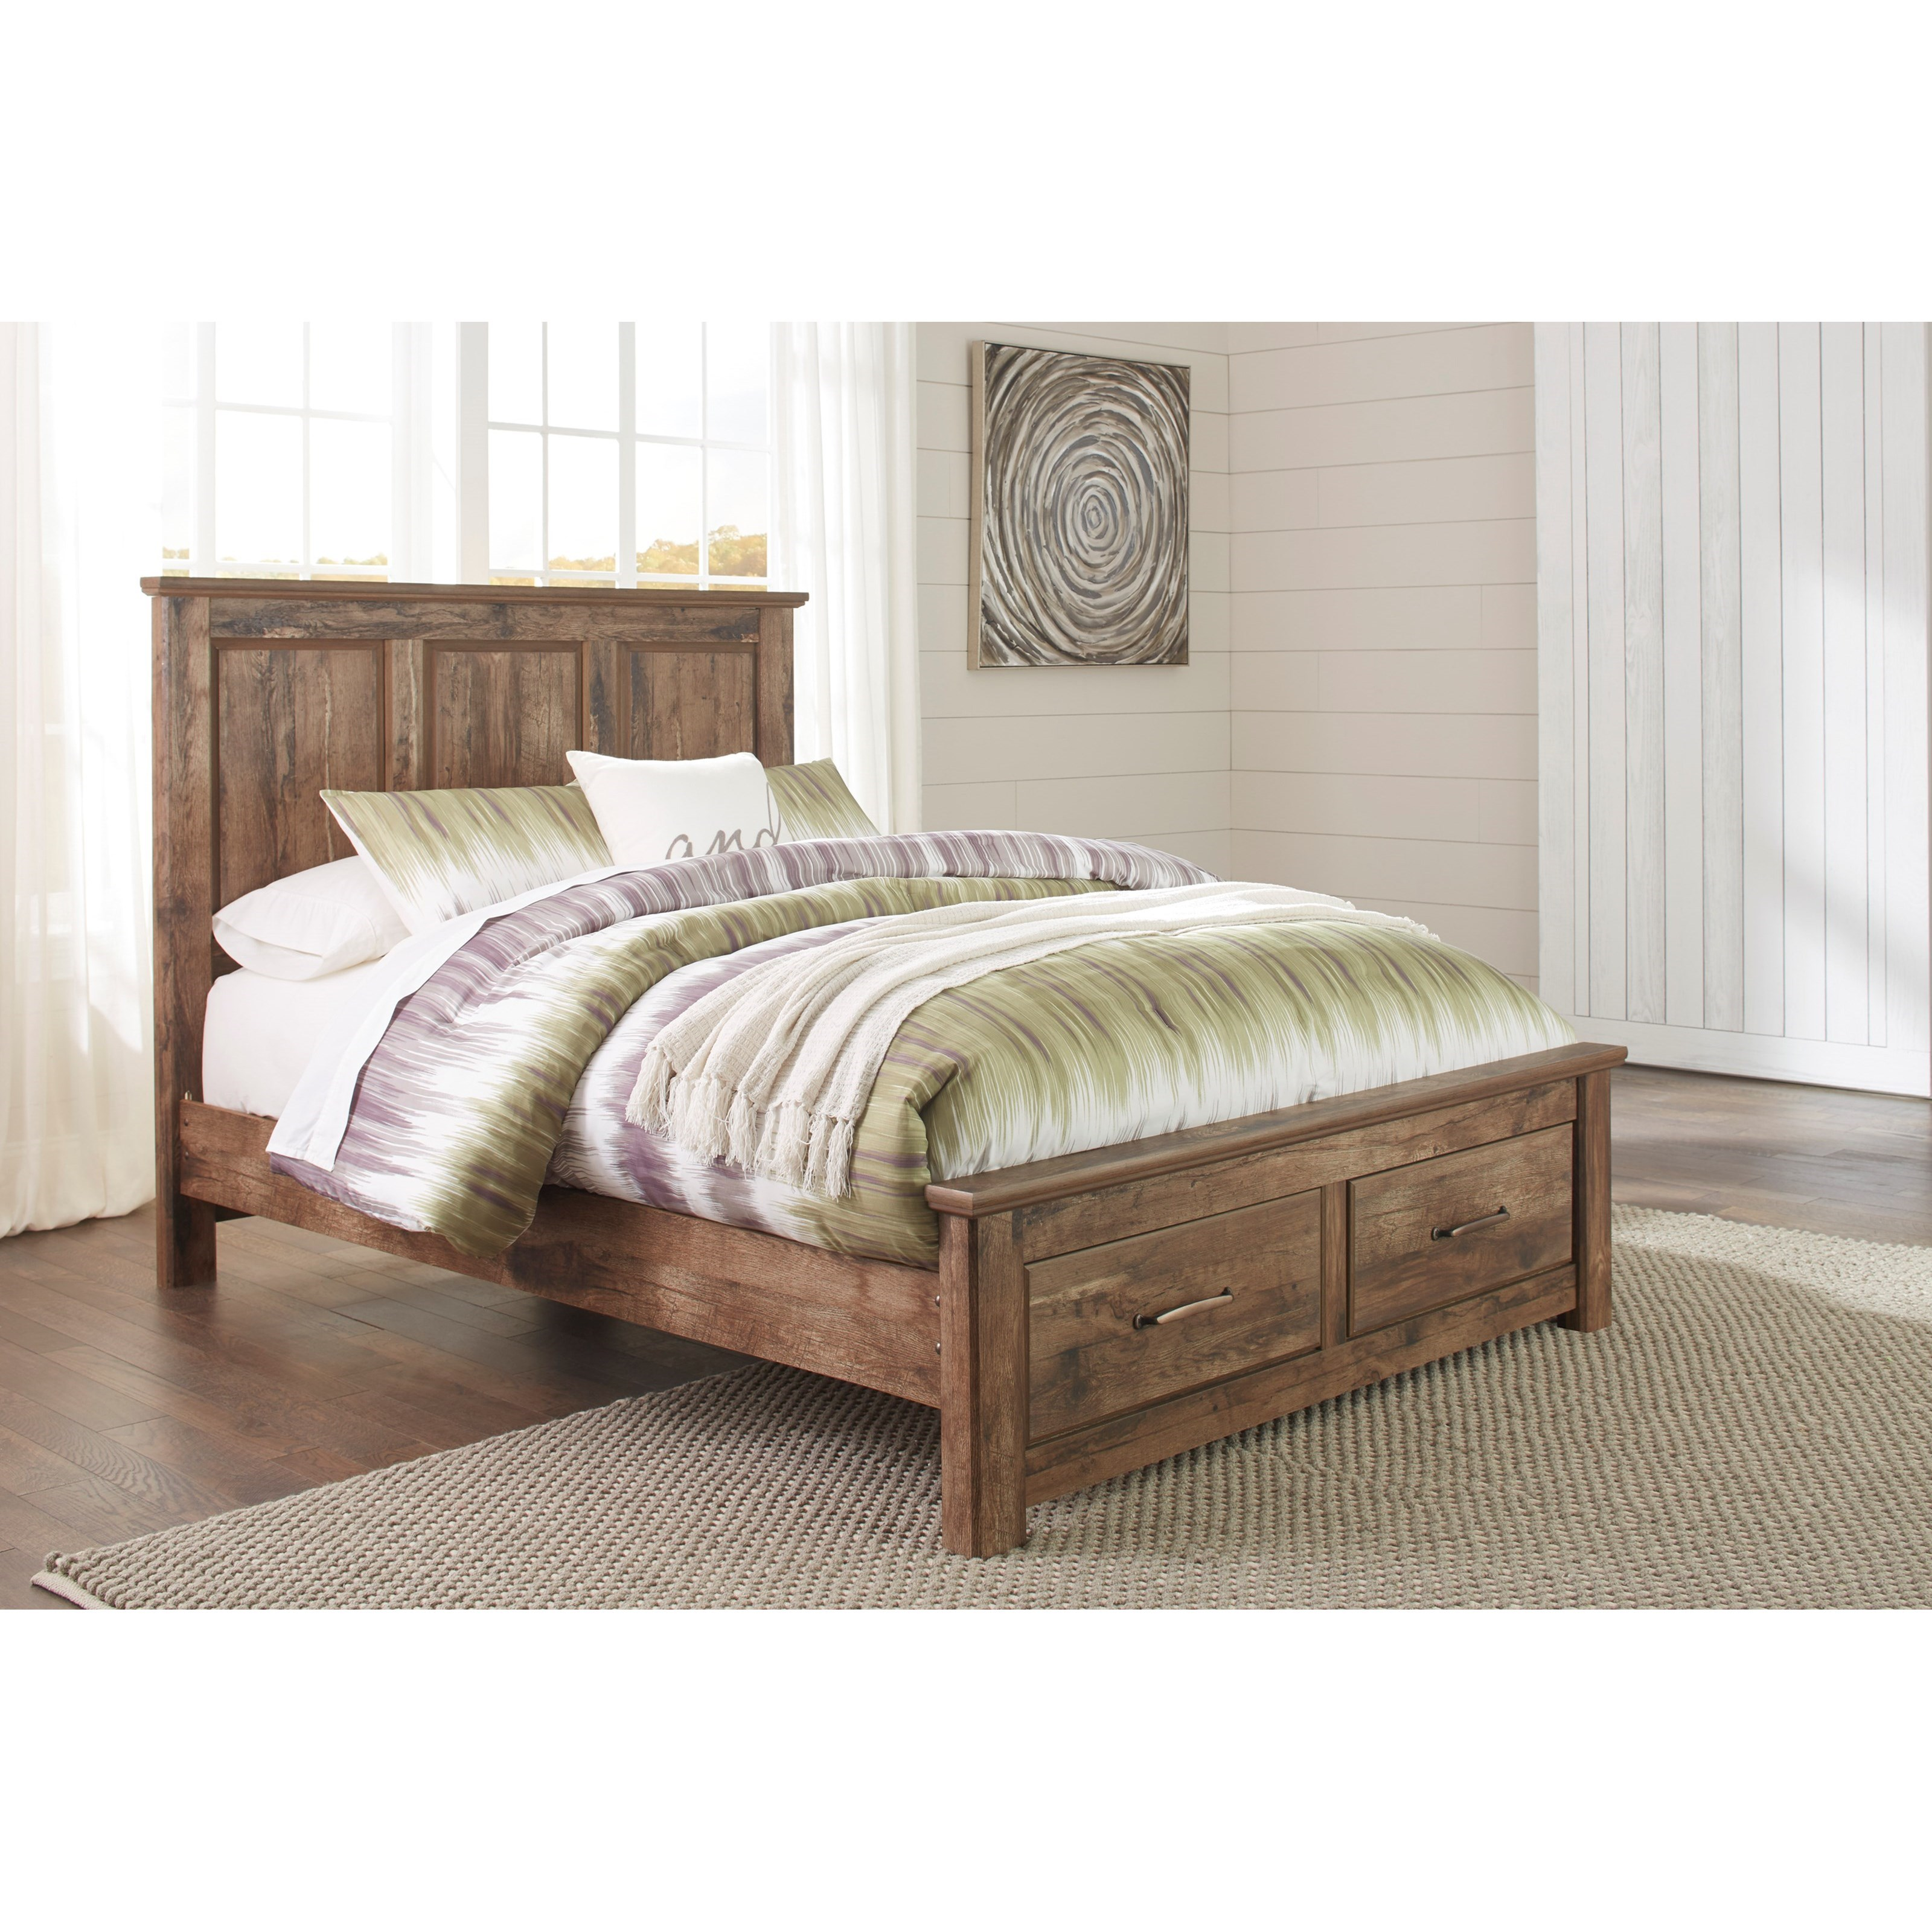 Ashley Signature Design Blaneville Rustic Style Queen Panel Storage Bed Dunk Bright